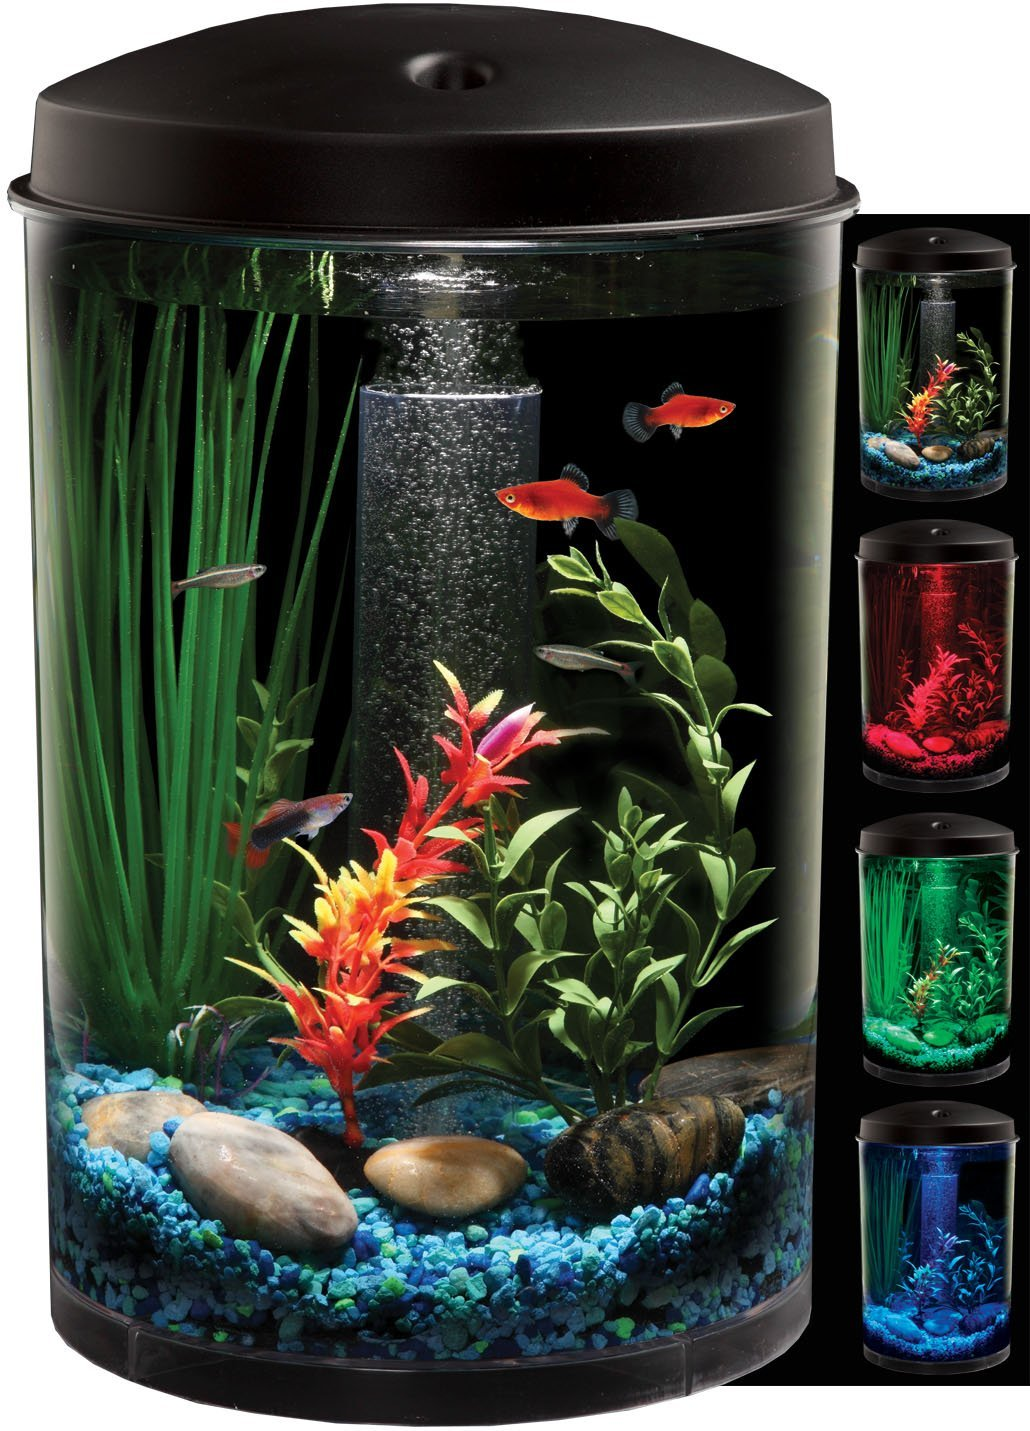 Globe Aquarium : The globe aquarium is simple and combines beauty with ...